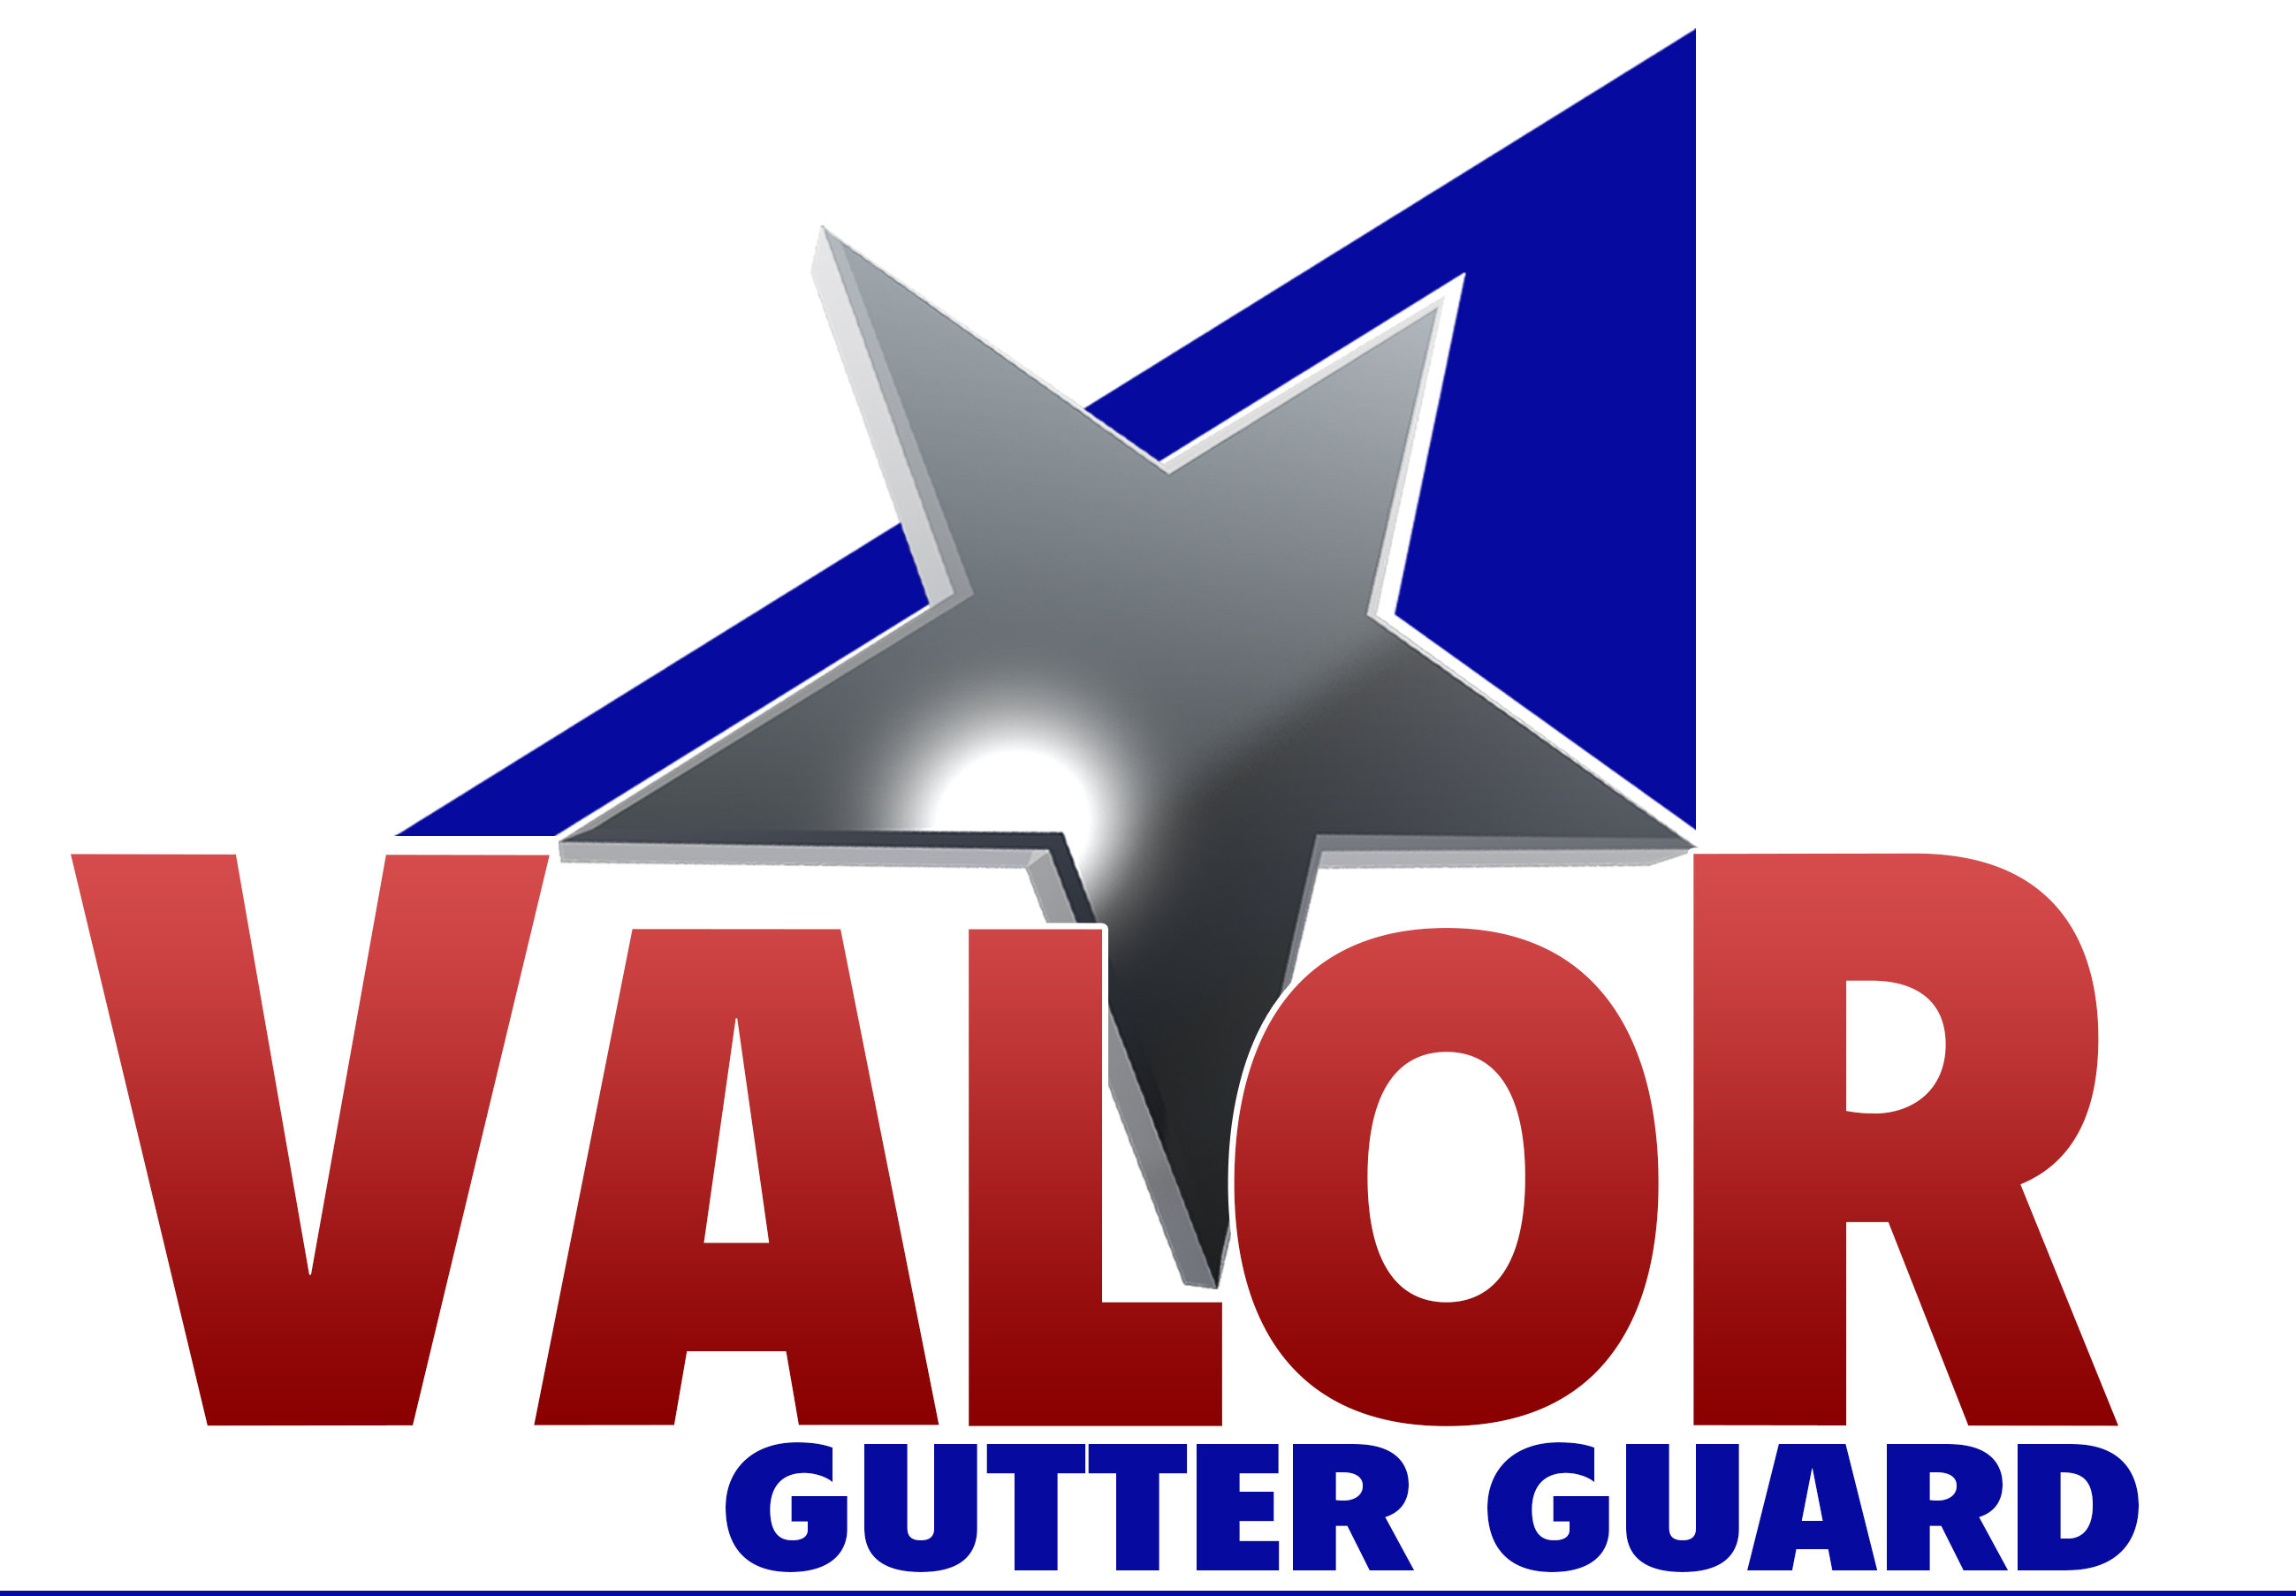 Master Installer - Valor Gutter Guard Certified Installer